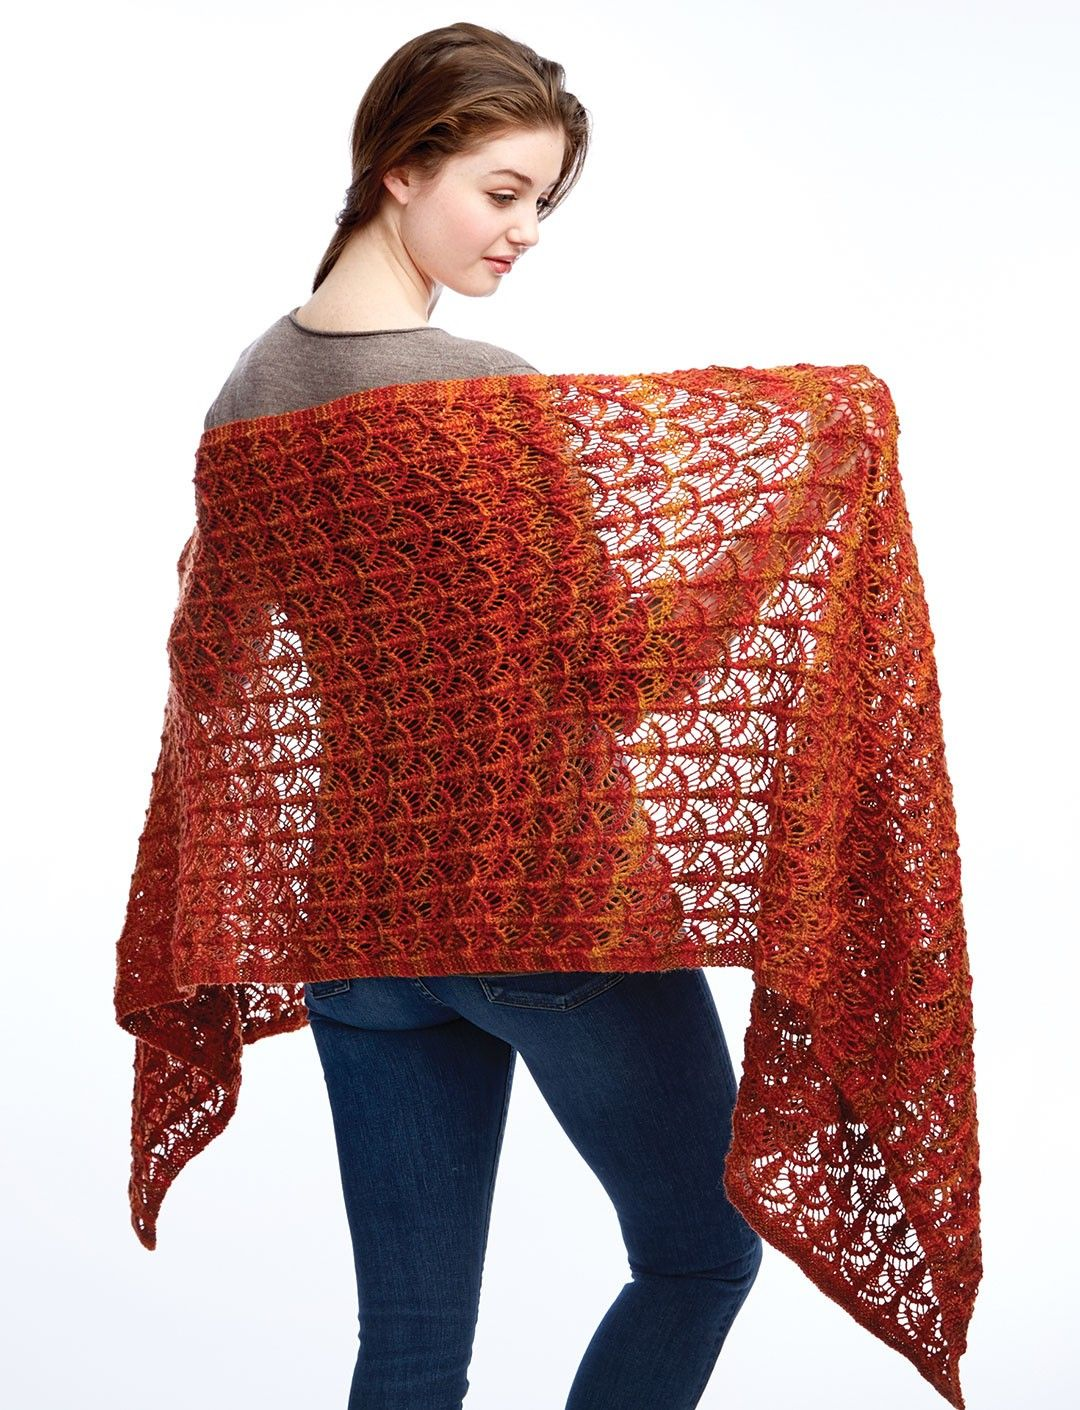 Lace Shawl and Wrap Knitting Patterns | Wrap pattern, Wraps and Lace ...